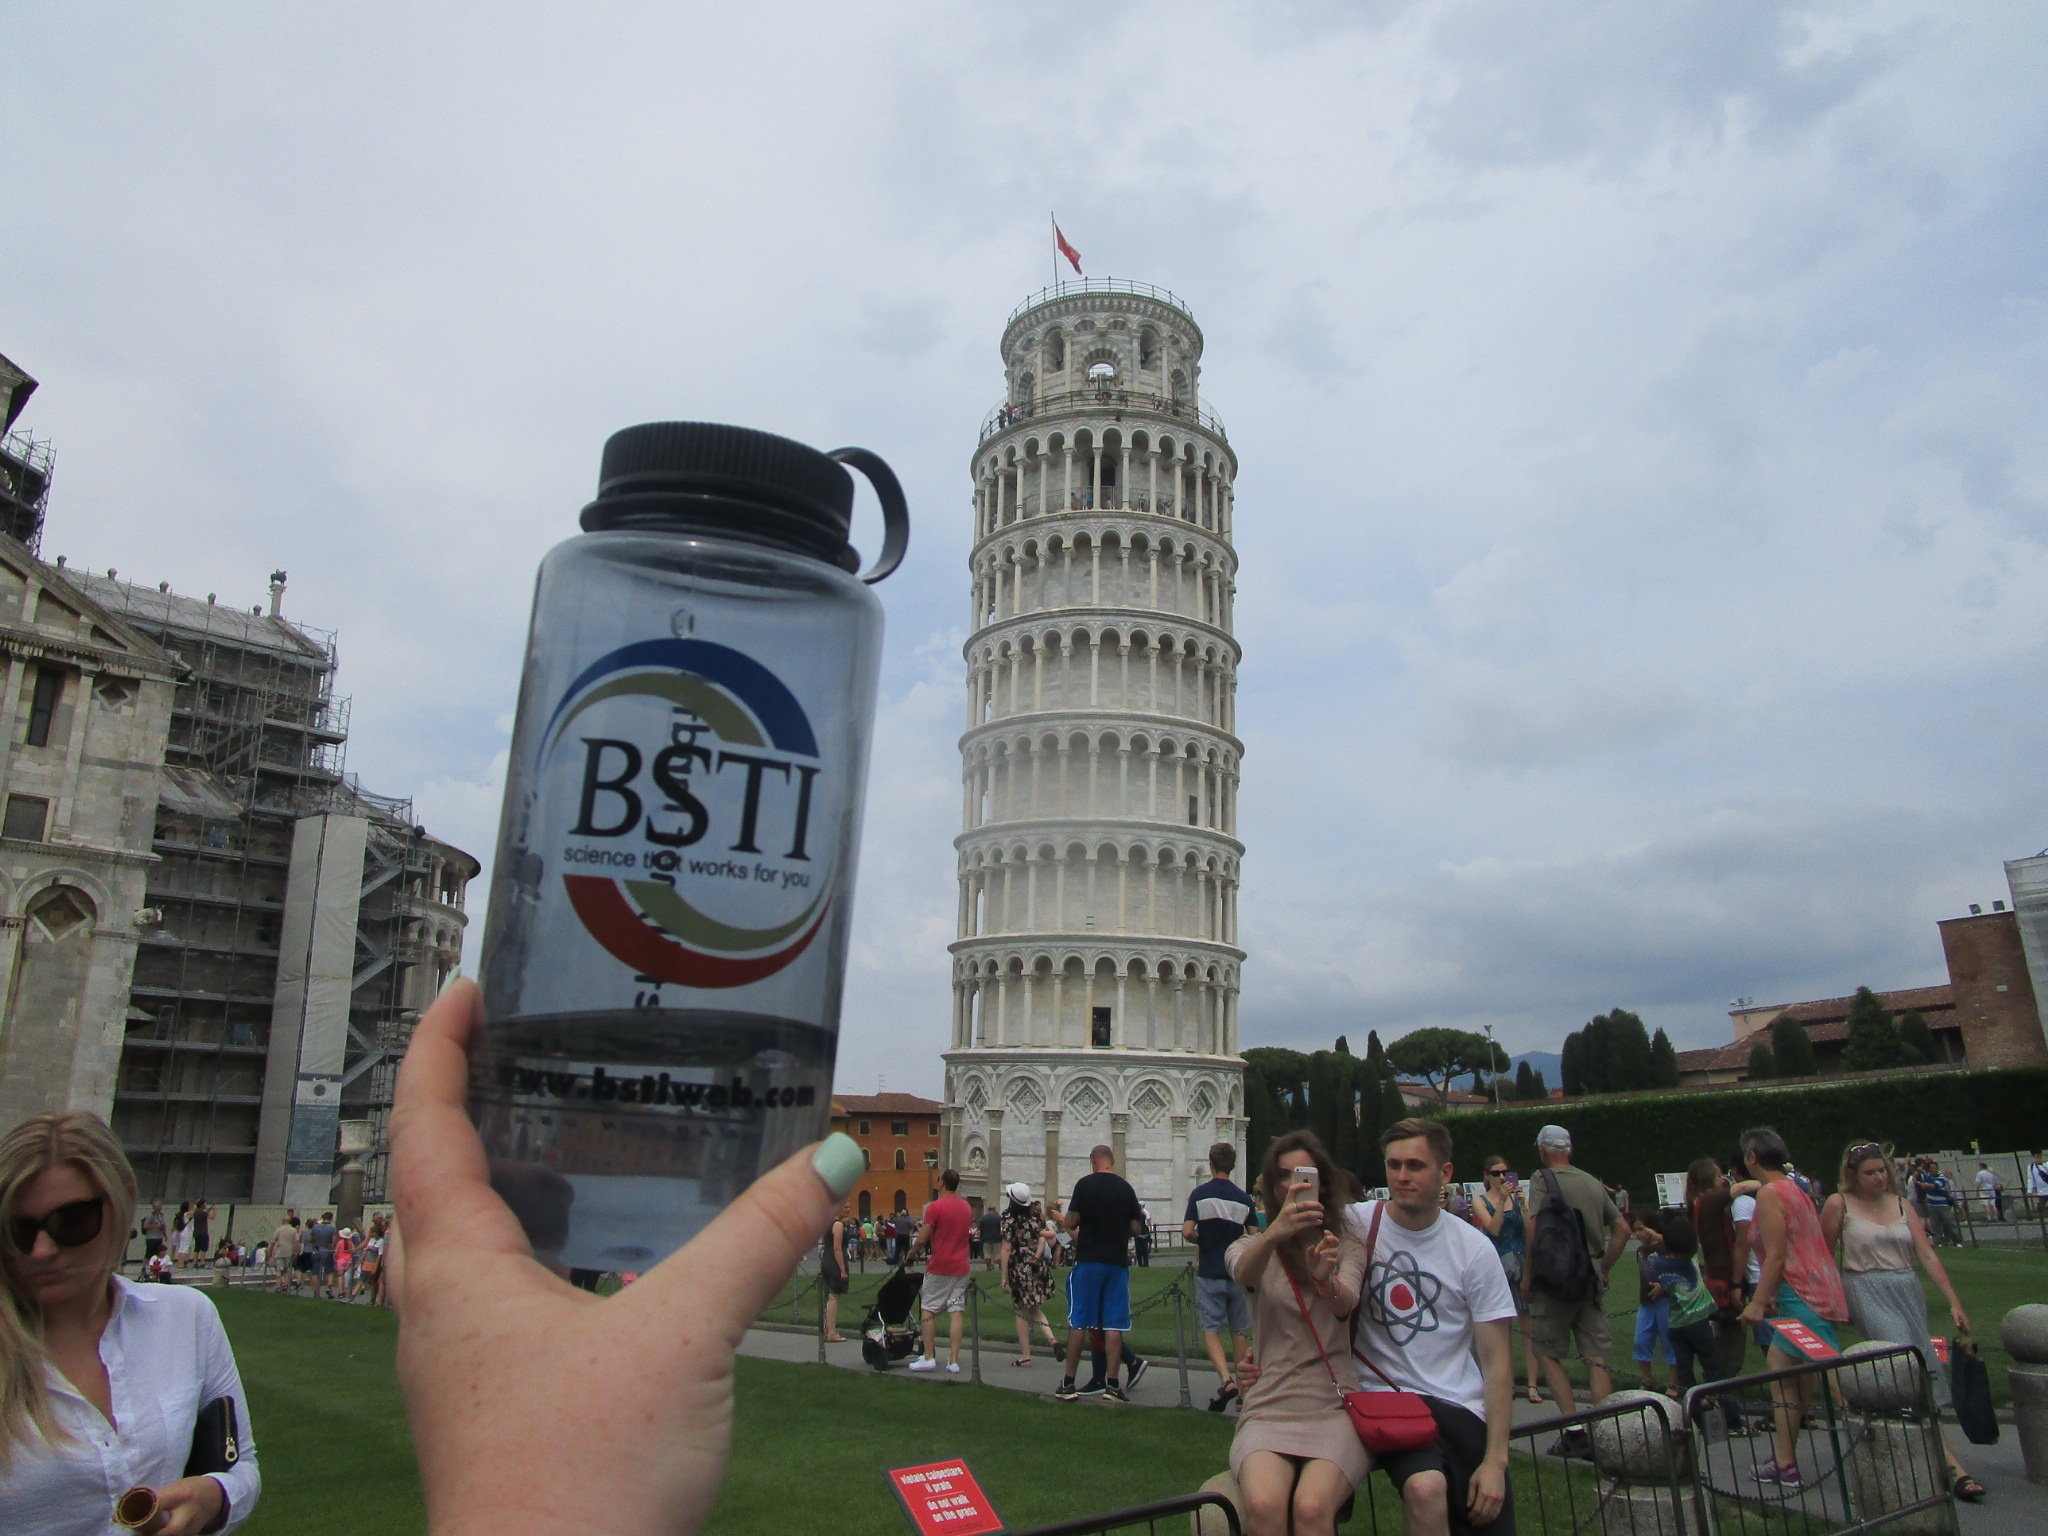 Mimicking the Leaning Tower of Pisa